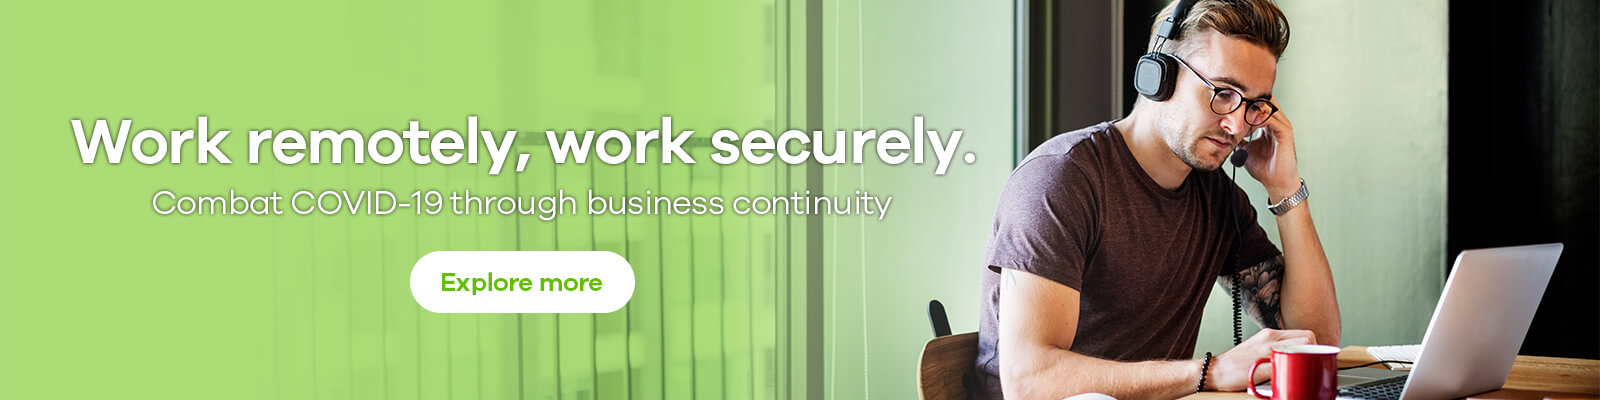 Work from Home, Effortlessly and Securely